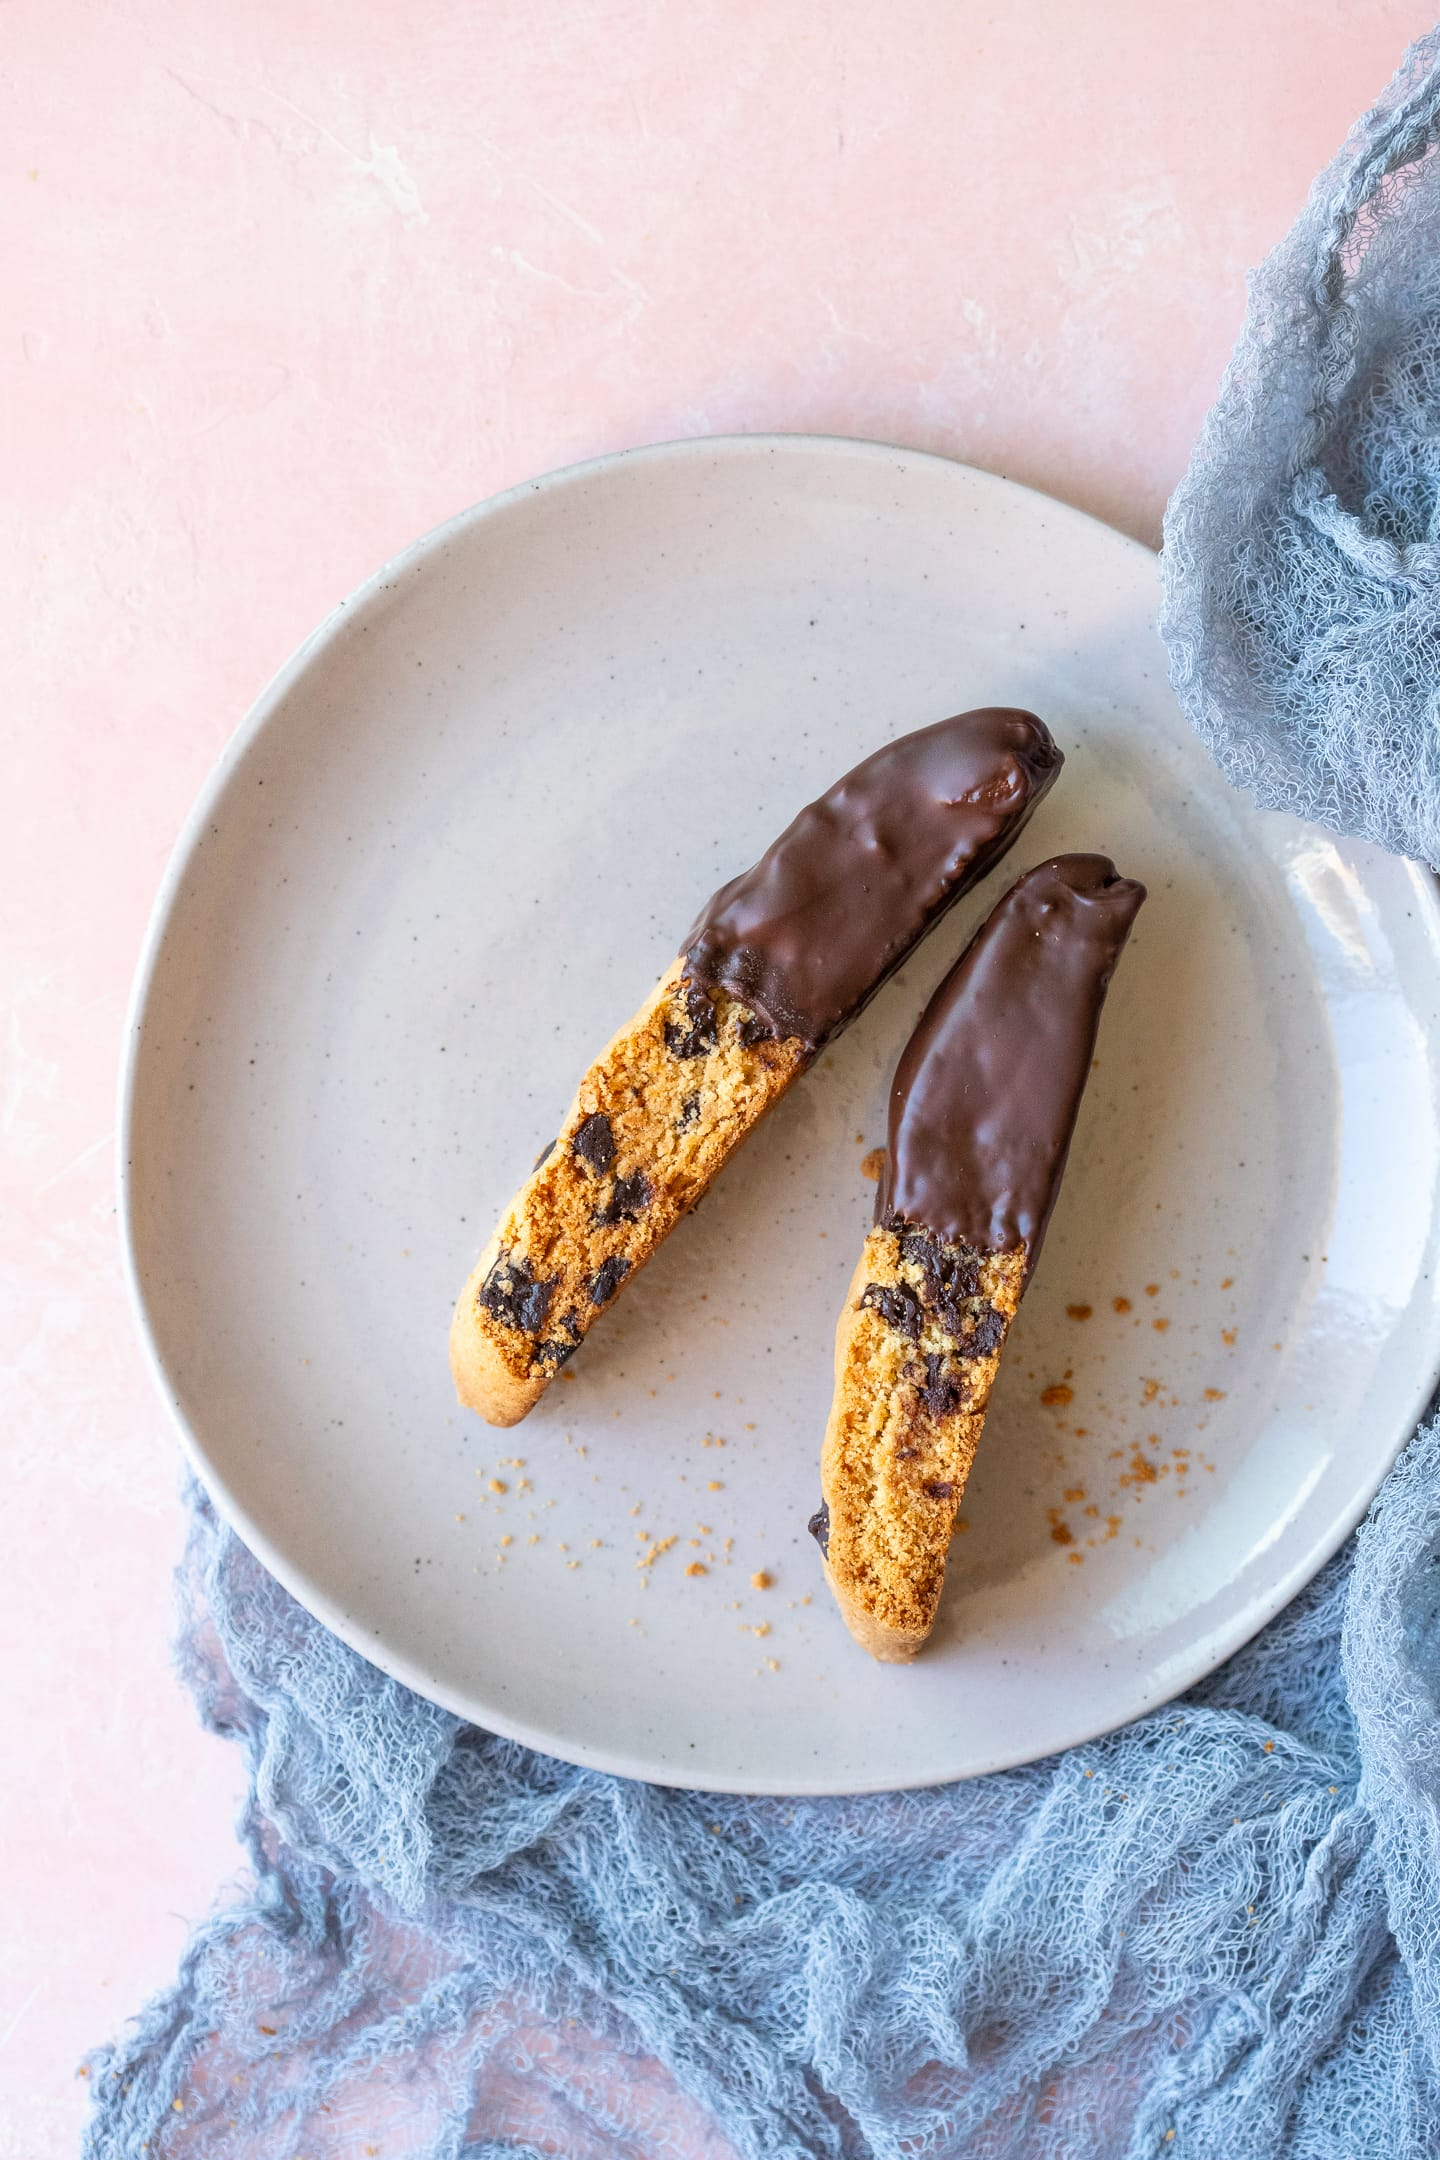 Two chocolate chip biscotti on a grey plate, next to a blue-grey linen, over a light pink backdrop.